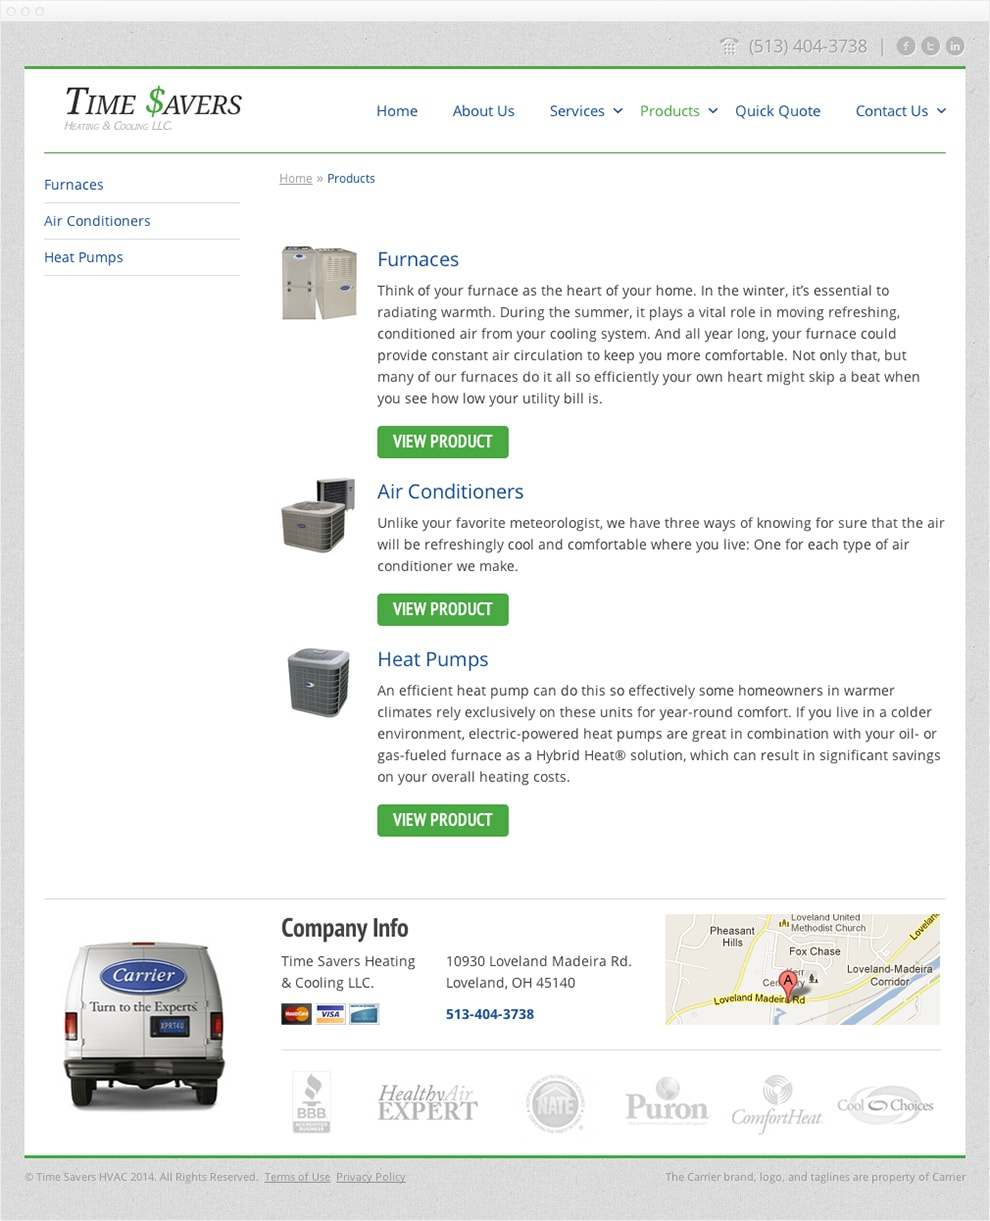 Screen capture of the Time $avers products page.